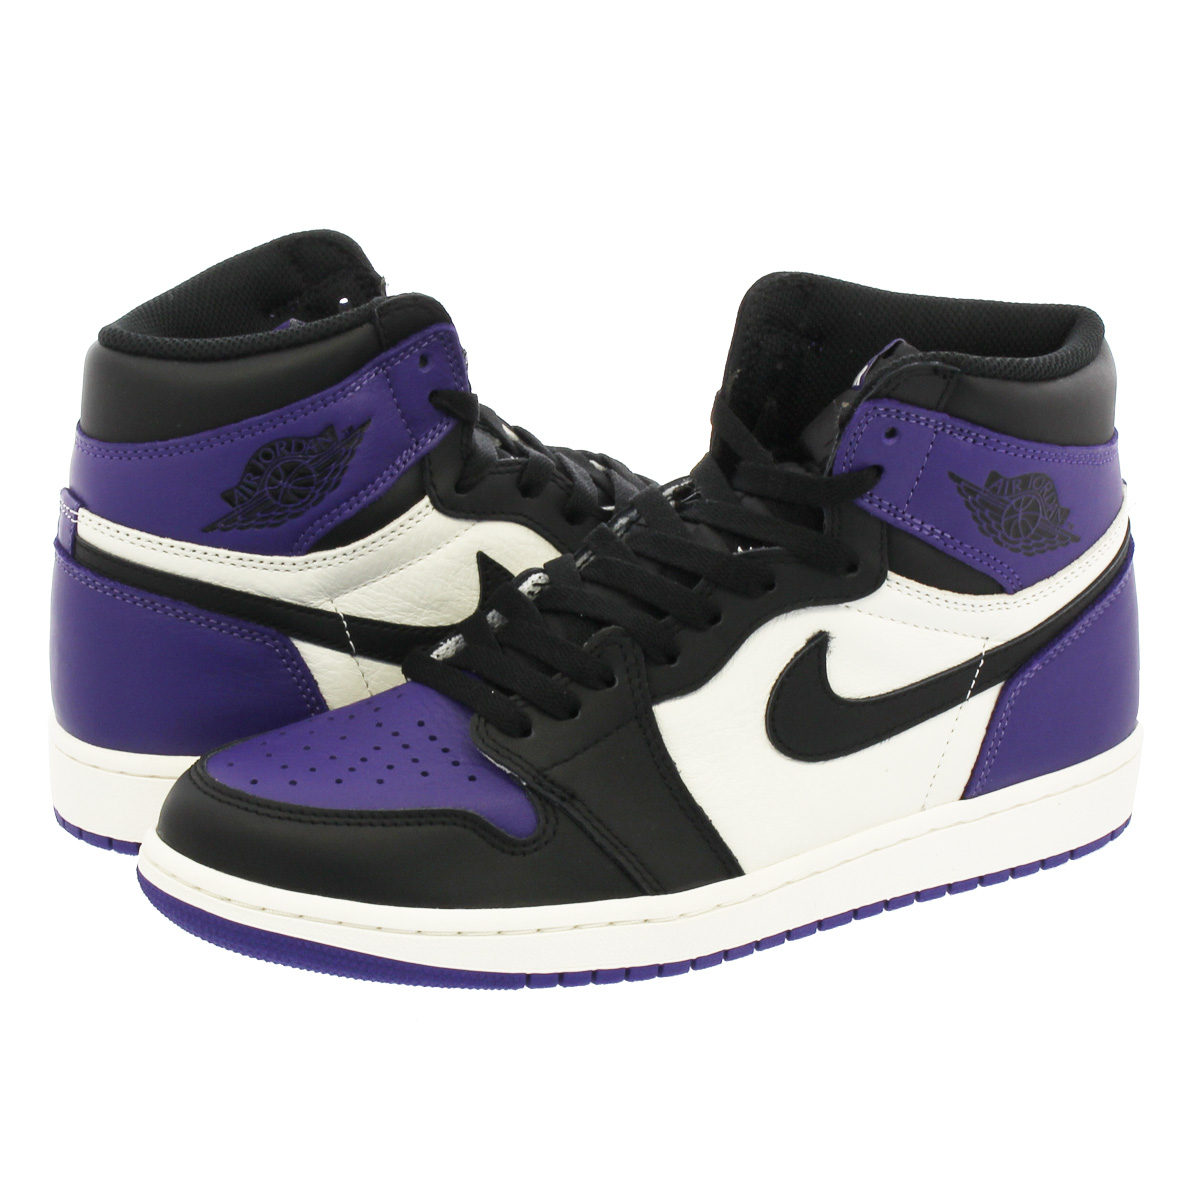 air jordan retro 1 purple